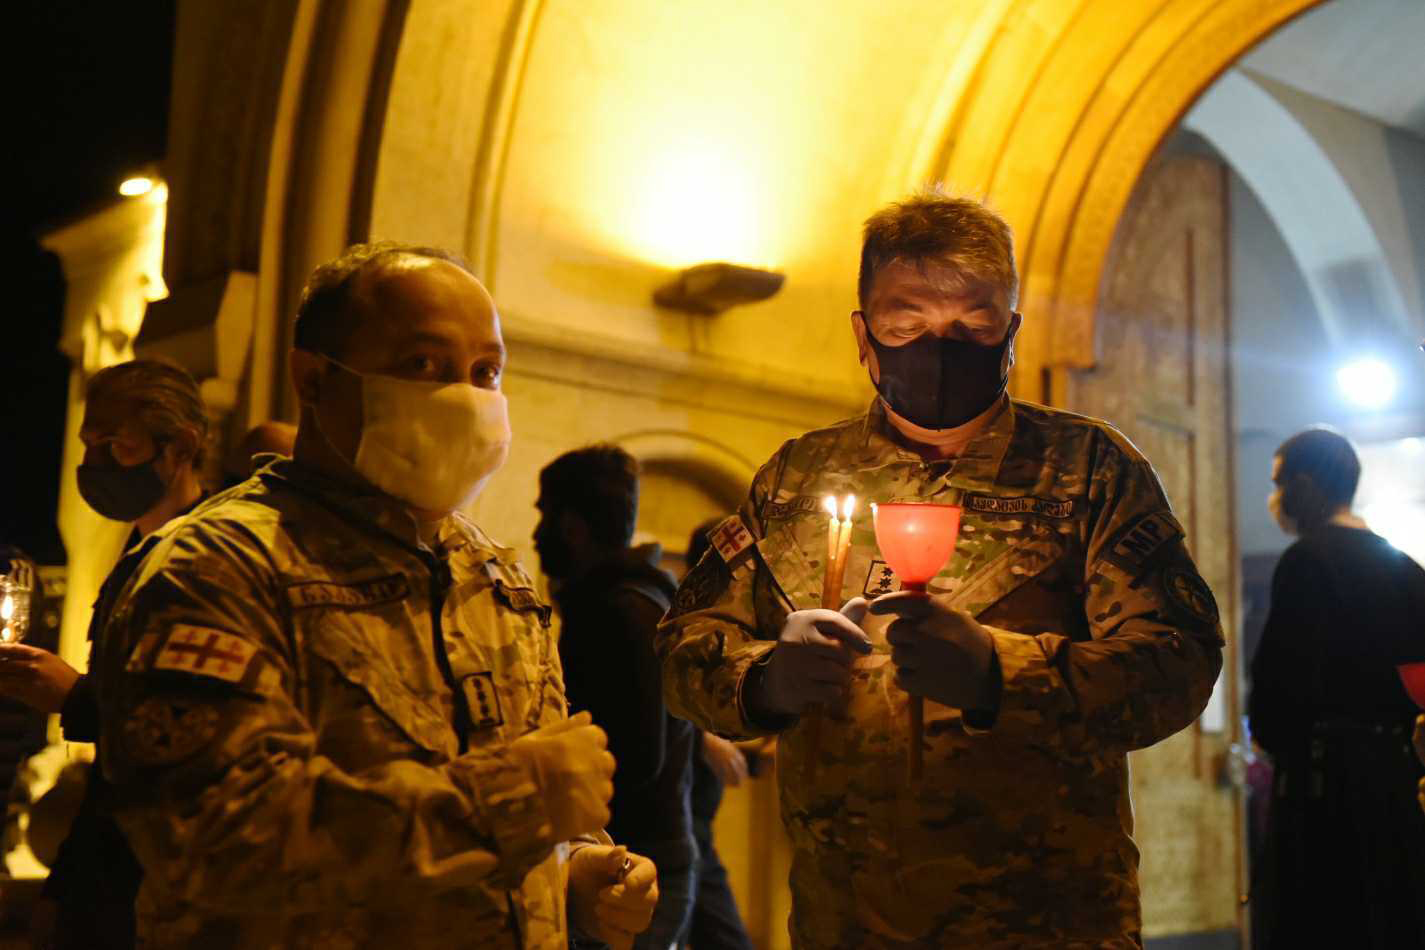 Soldiers lighting candles at Sameba Trinity Cathedral. Photo: Mariam Nikuradze/OC Media.